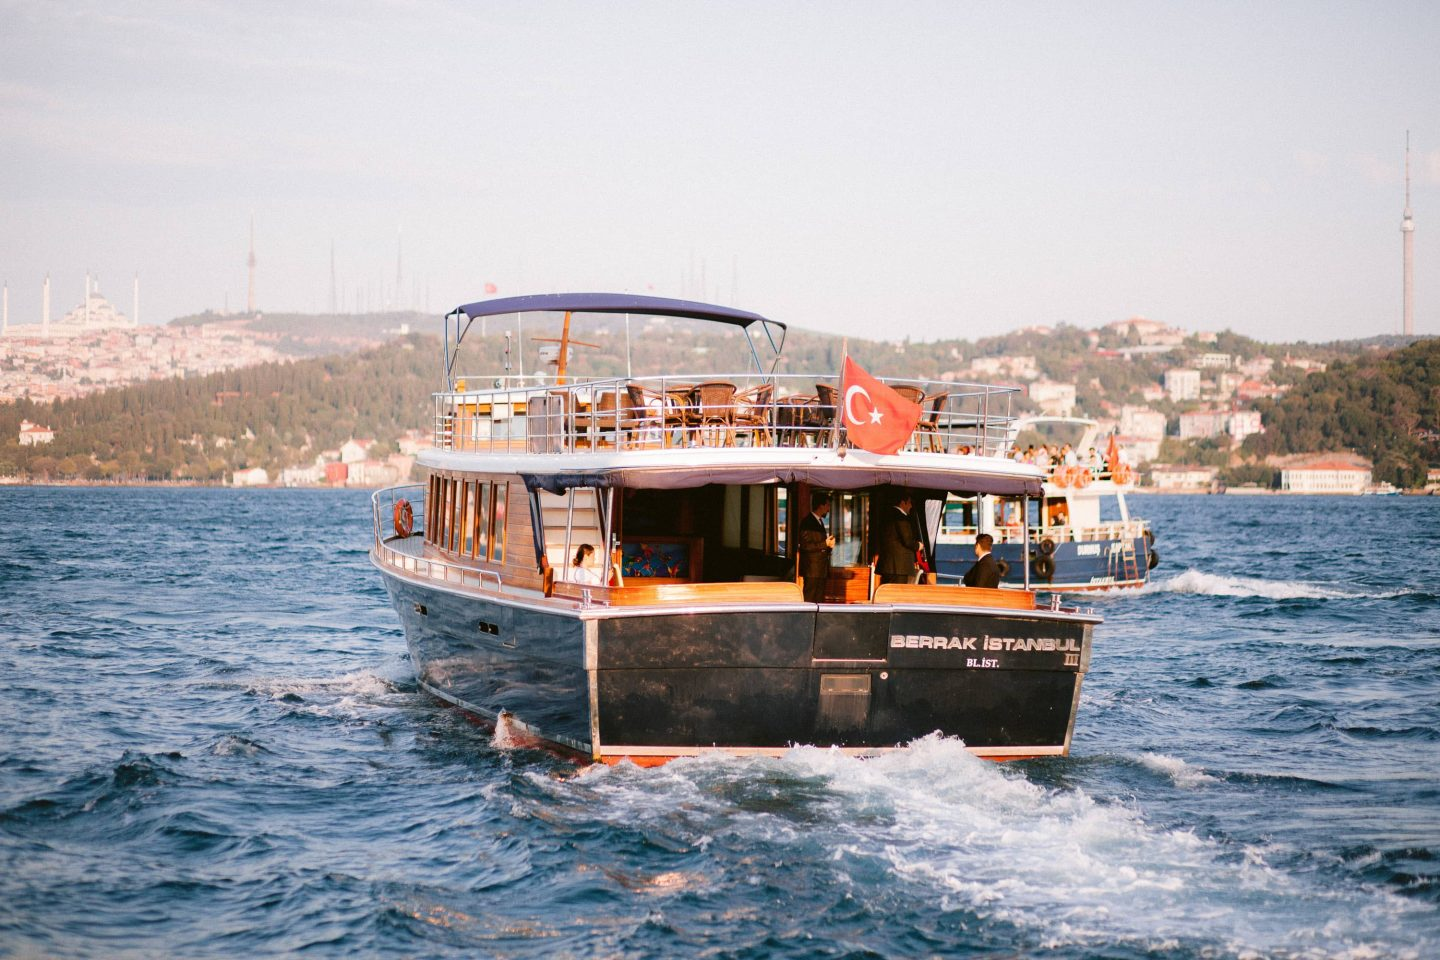 Boat during sunset at this Istanbul wedding weekend at Four Seasons Bosphorus | Photo by Allan Zepeda